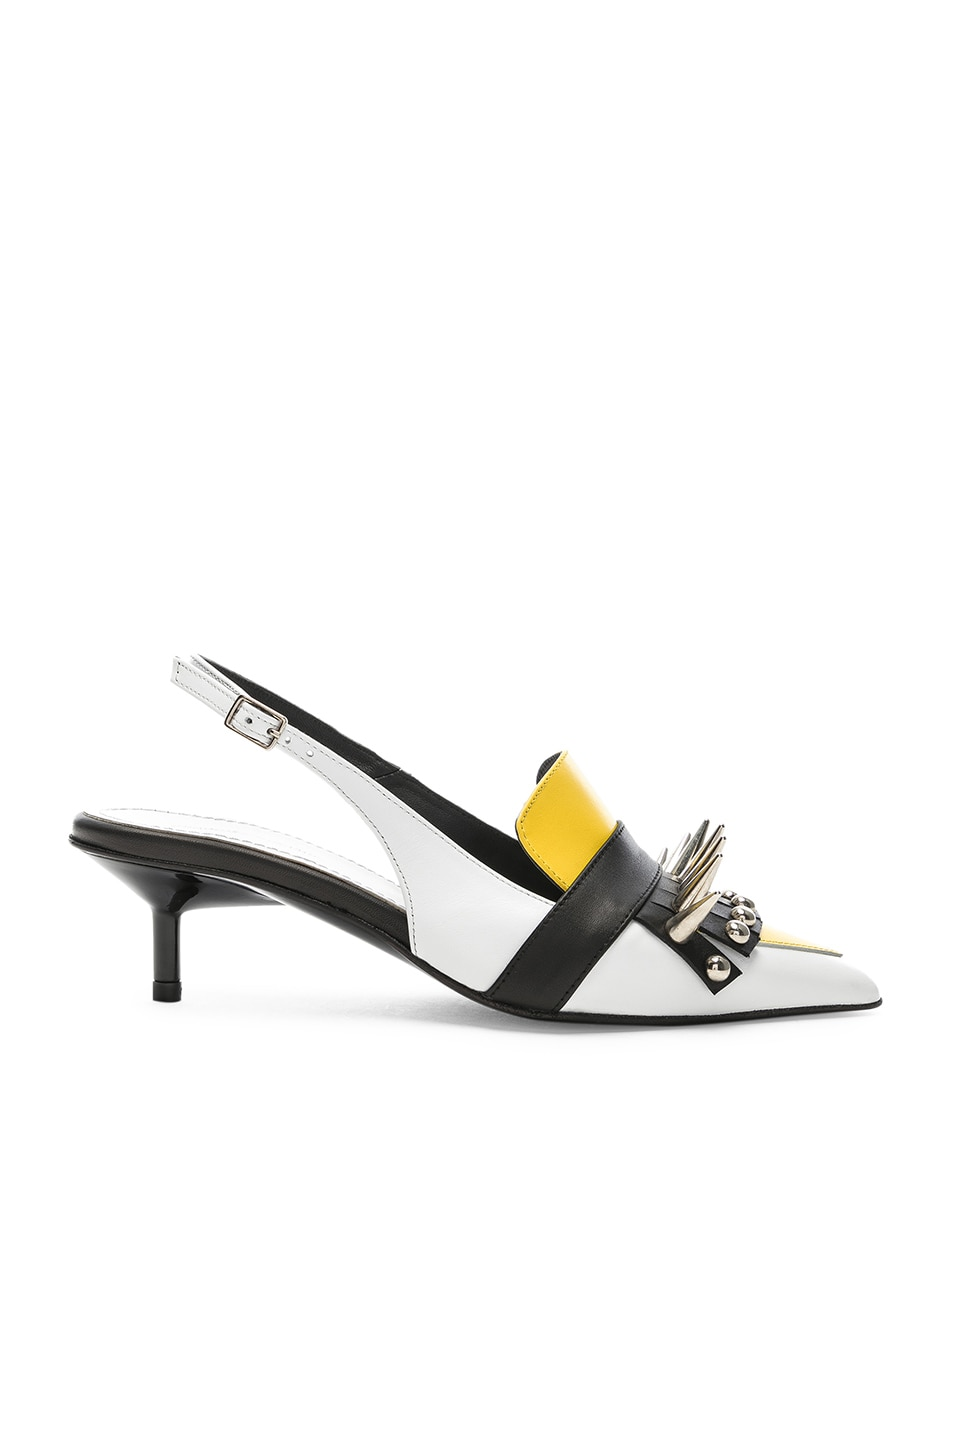 Image 1 of Marques ' Almeida Spiked Leather Slingback Mules in White & Yellow